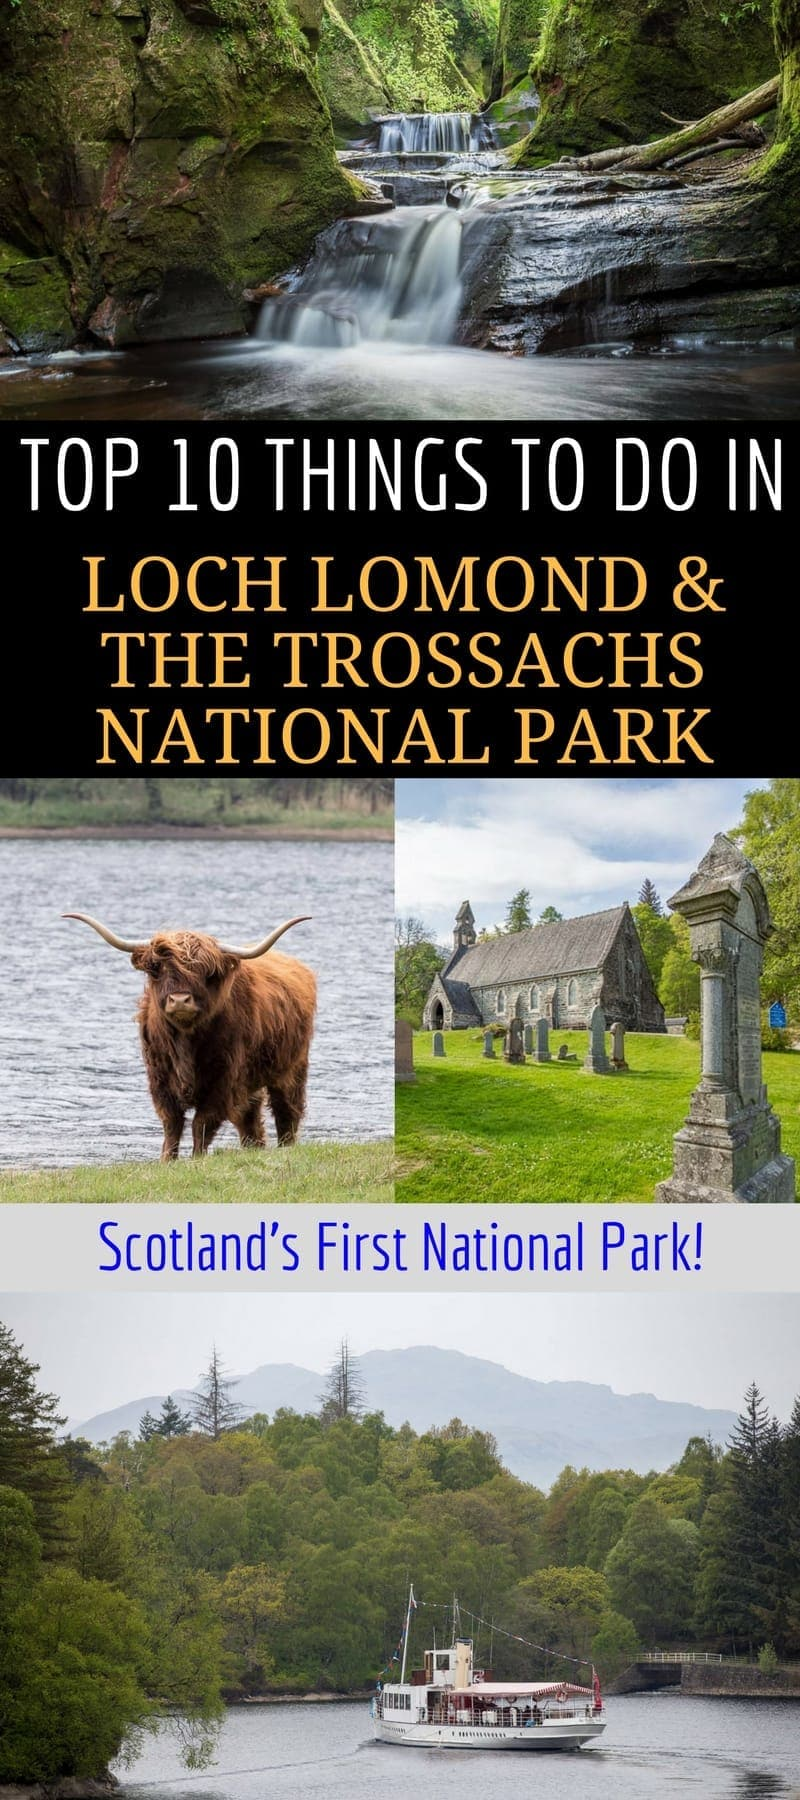 A guide to visiting Loch Lomond and the Trossachs National Park, Scotland's very first national park. Loch Lomond is a popular area for nature and outdoor seekers and makes an easy weekend or day trip from Glasgow or Edinburgh Scotland. We'll share the top things to do in Loch Lomond, where to stay, and how to plan your time. #LochLomond #Scotland #Glasgow